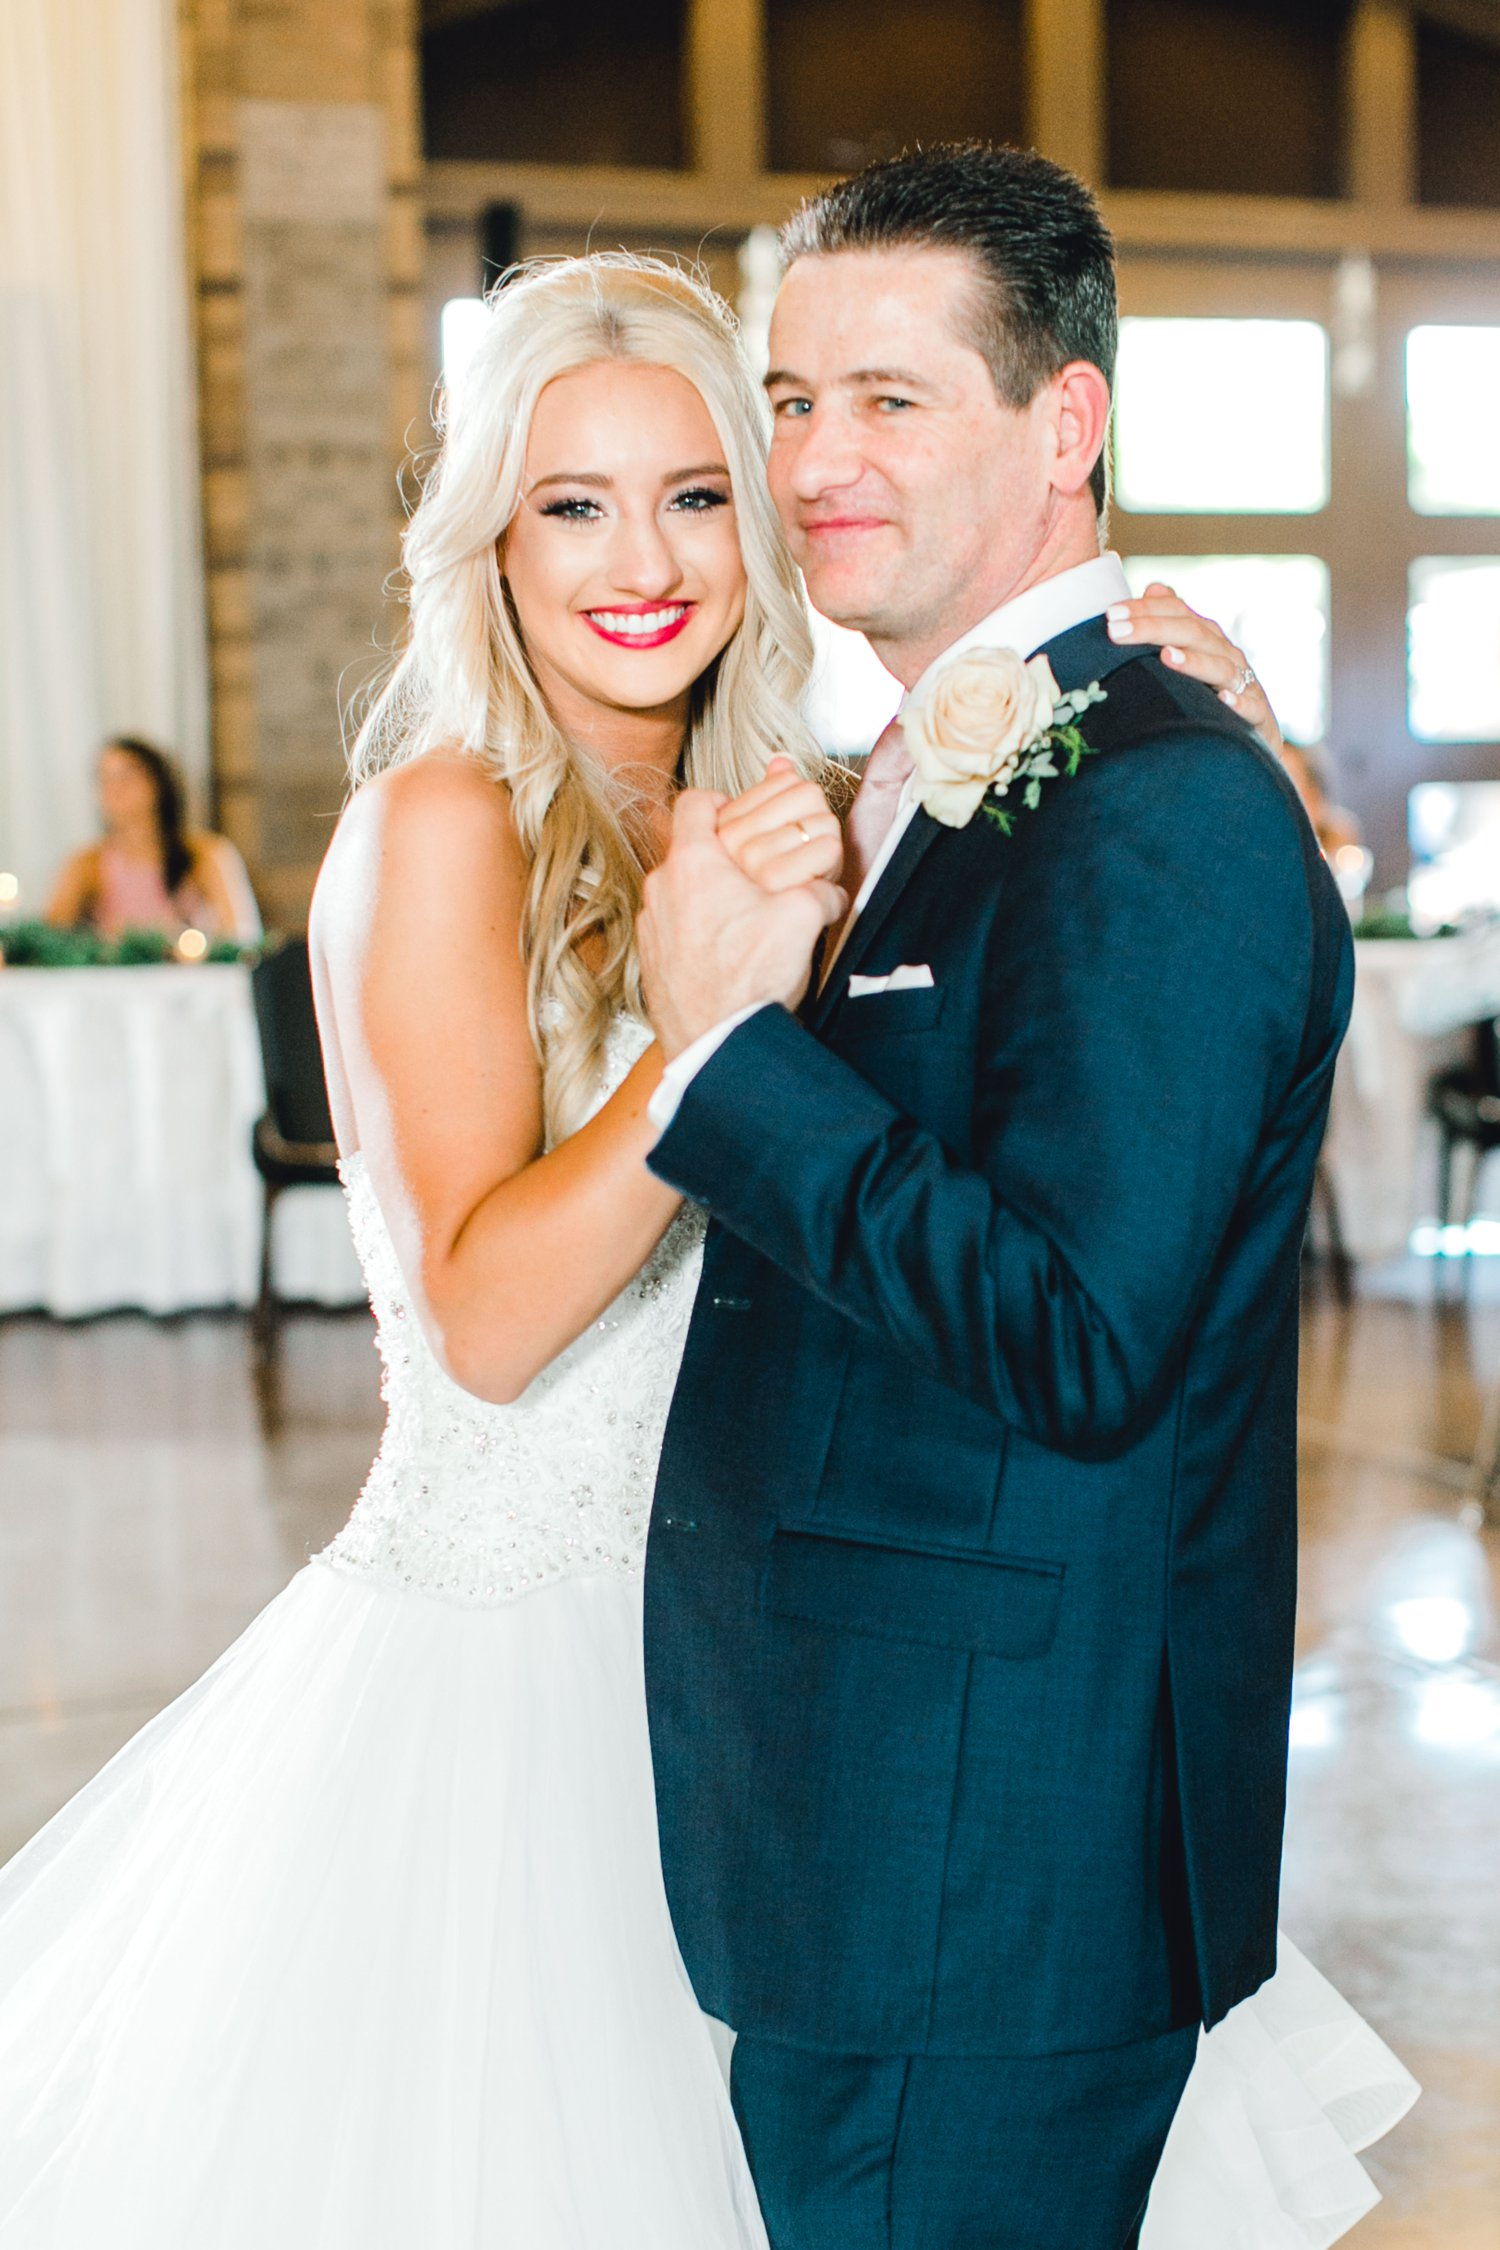 MADI_AND_WILL_STEPHENS_ALLEEJ_LUBBOCK_PHOTOGRAPHER_TEXAS+TECH+FRAZIER_ALUMNI0161.jpg